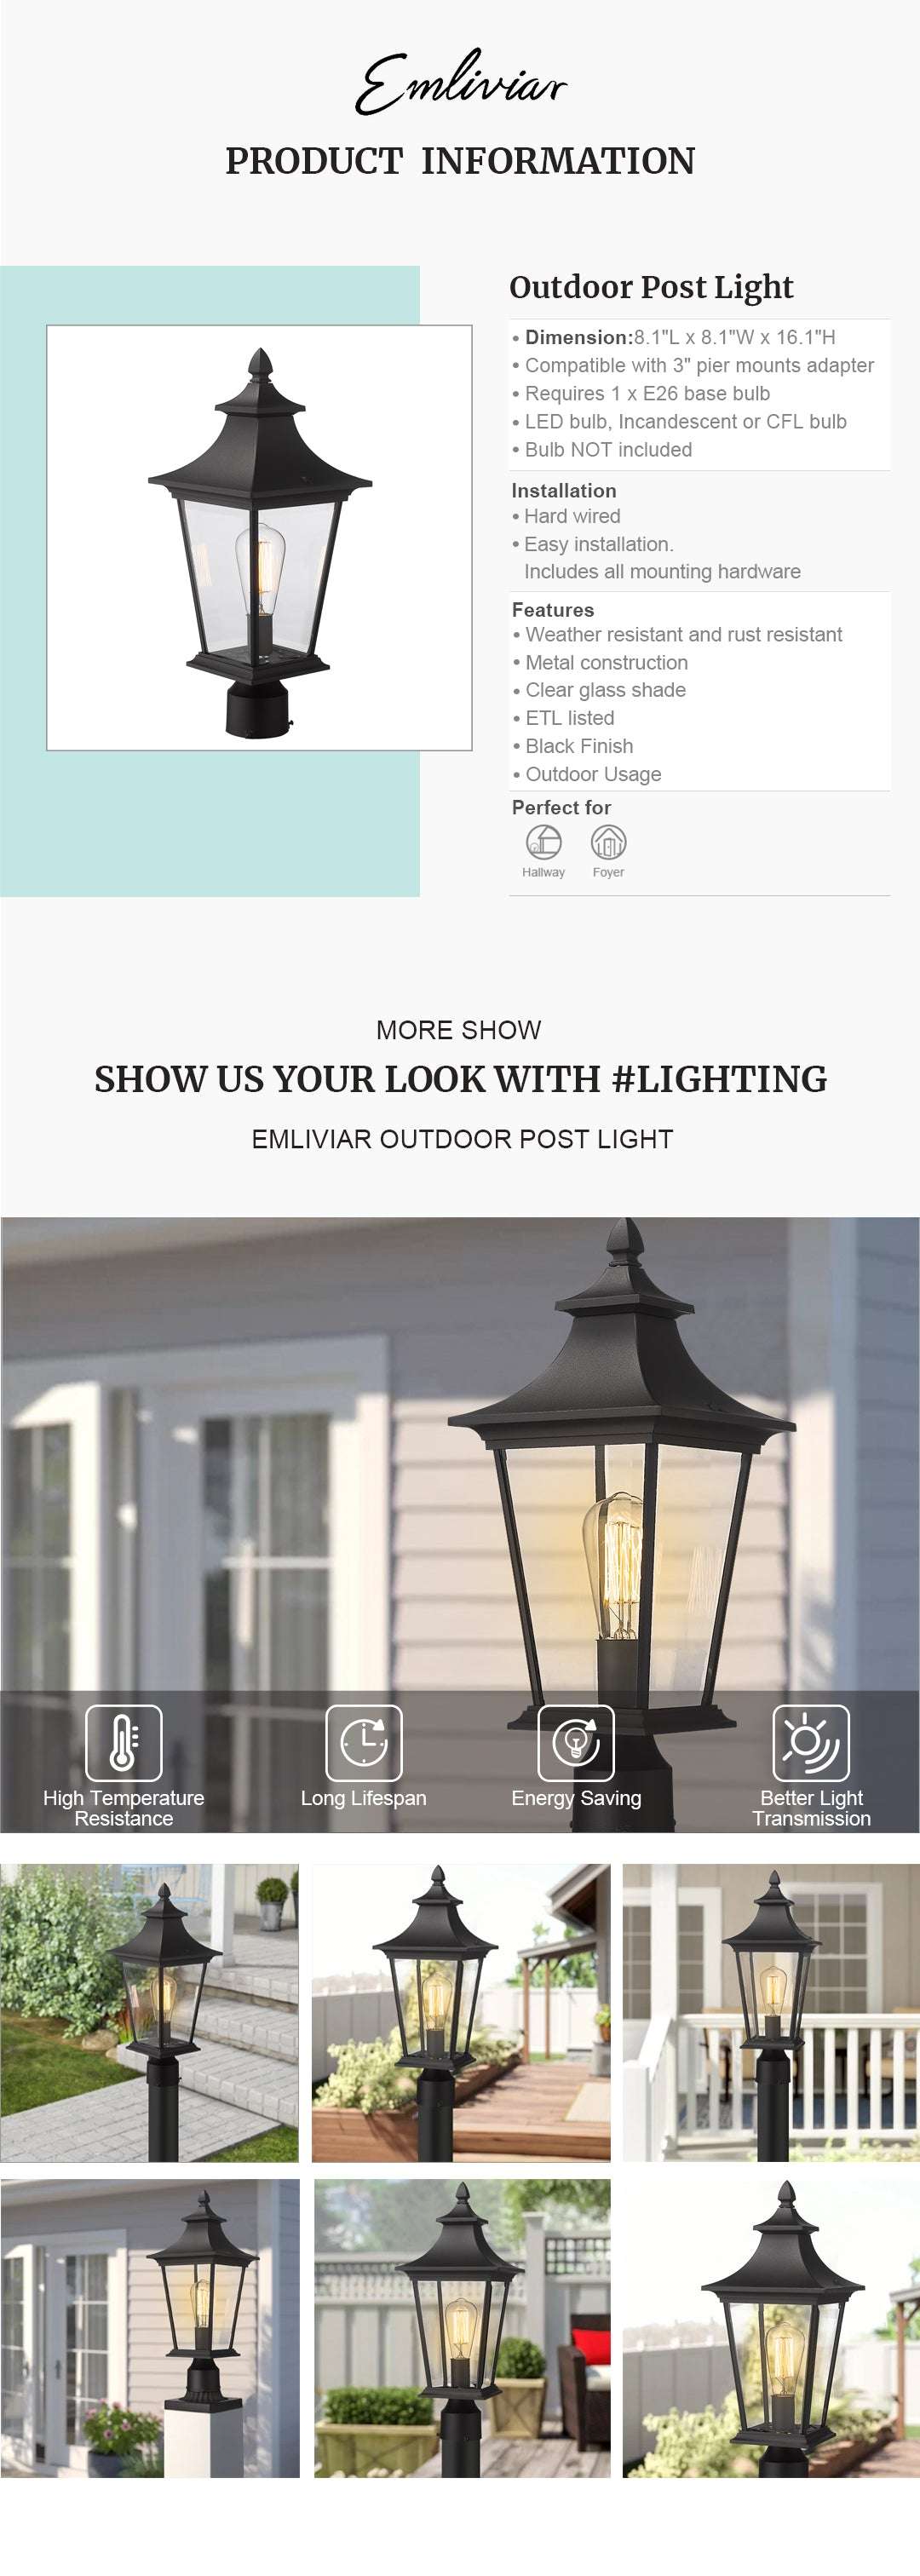 """Weather resistant and rust resistant, this exterior post light features sturdy metal construction and clear glass shade, suitable for wet locations This post lighting can be mounted on a pillar or column, or fit it with a 3"""" diameter mounting base(Not included). Easy installation. Includes all mounting hardware Hard wired. Requires 1 x E26 base bulb(Max.60W). Bulb NOT included. Compatible with LED bulb, Incandescent or CFL bulb ETL Listed with a one-year warranty. This post mount light is perfect for garden, backyard, courtyard, patio, balcony, porch, pathway or entryway. Dimension: 8.1"""" x 8.1"""" x 16.1""""(L x W x H); Compatible with 3"""" pier mounts adapter(Sold Separately)"""